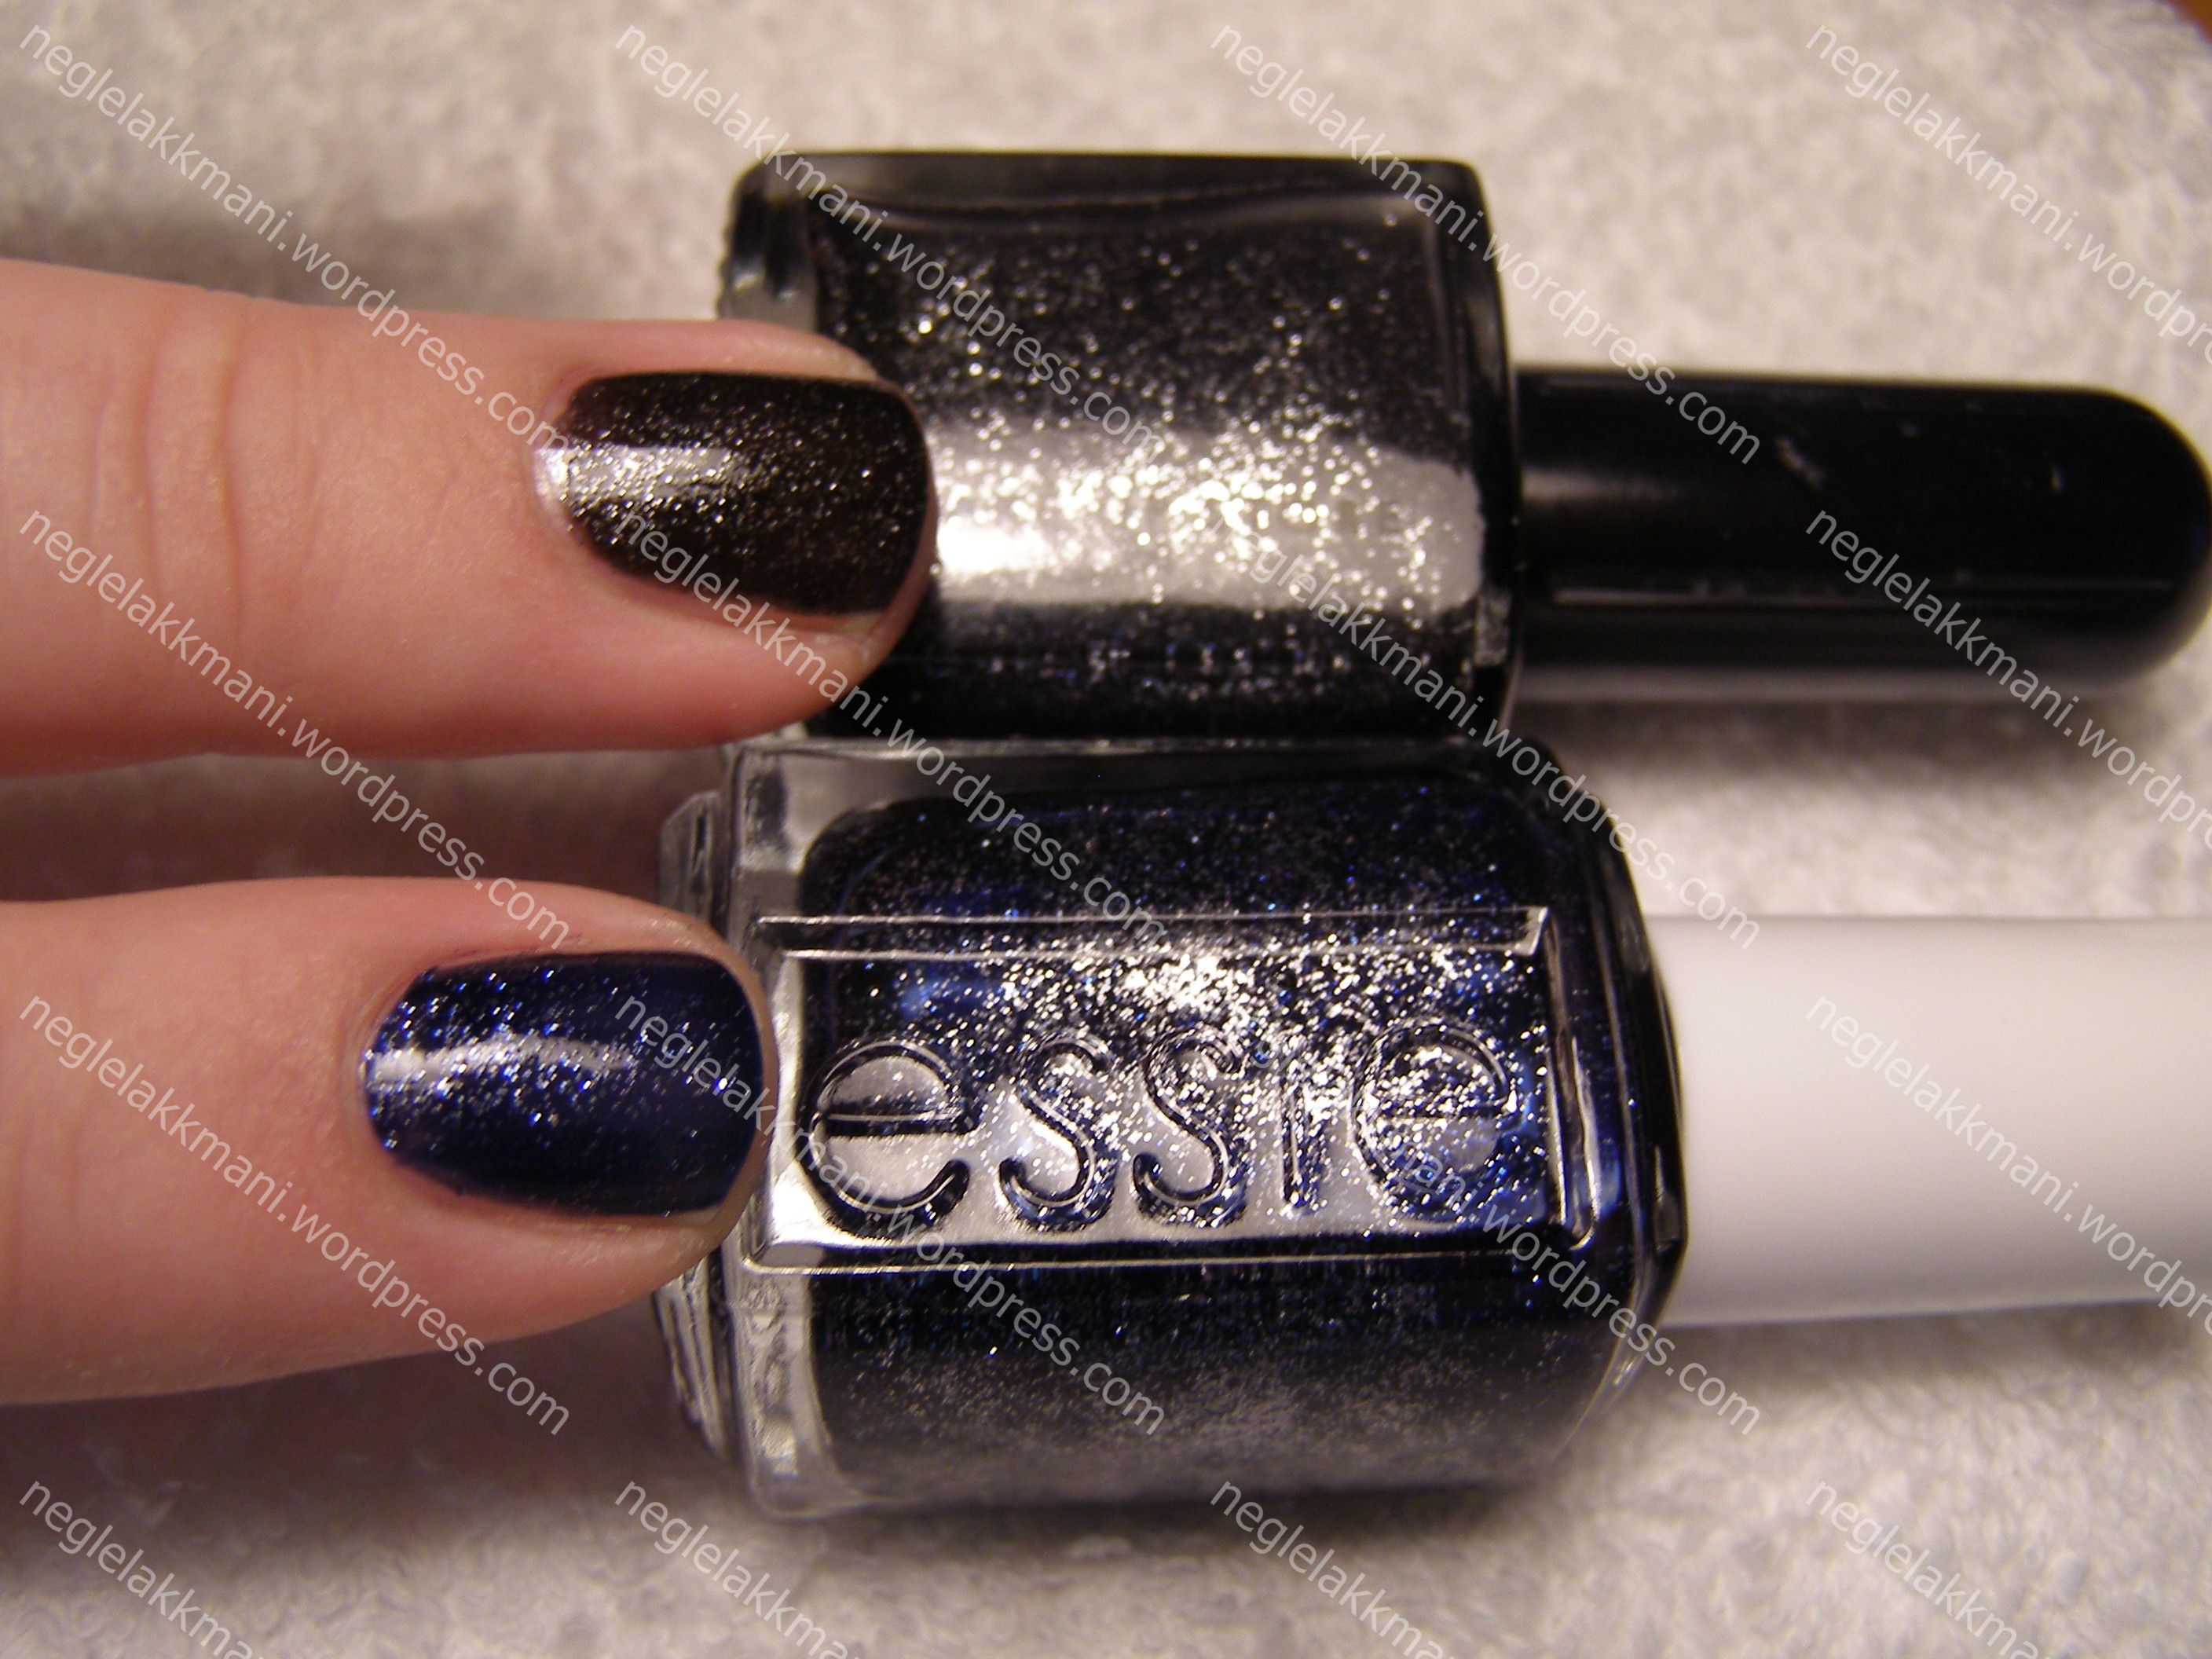 Essie Starry Starry Night & Make Up Store Nightmare